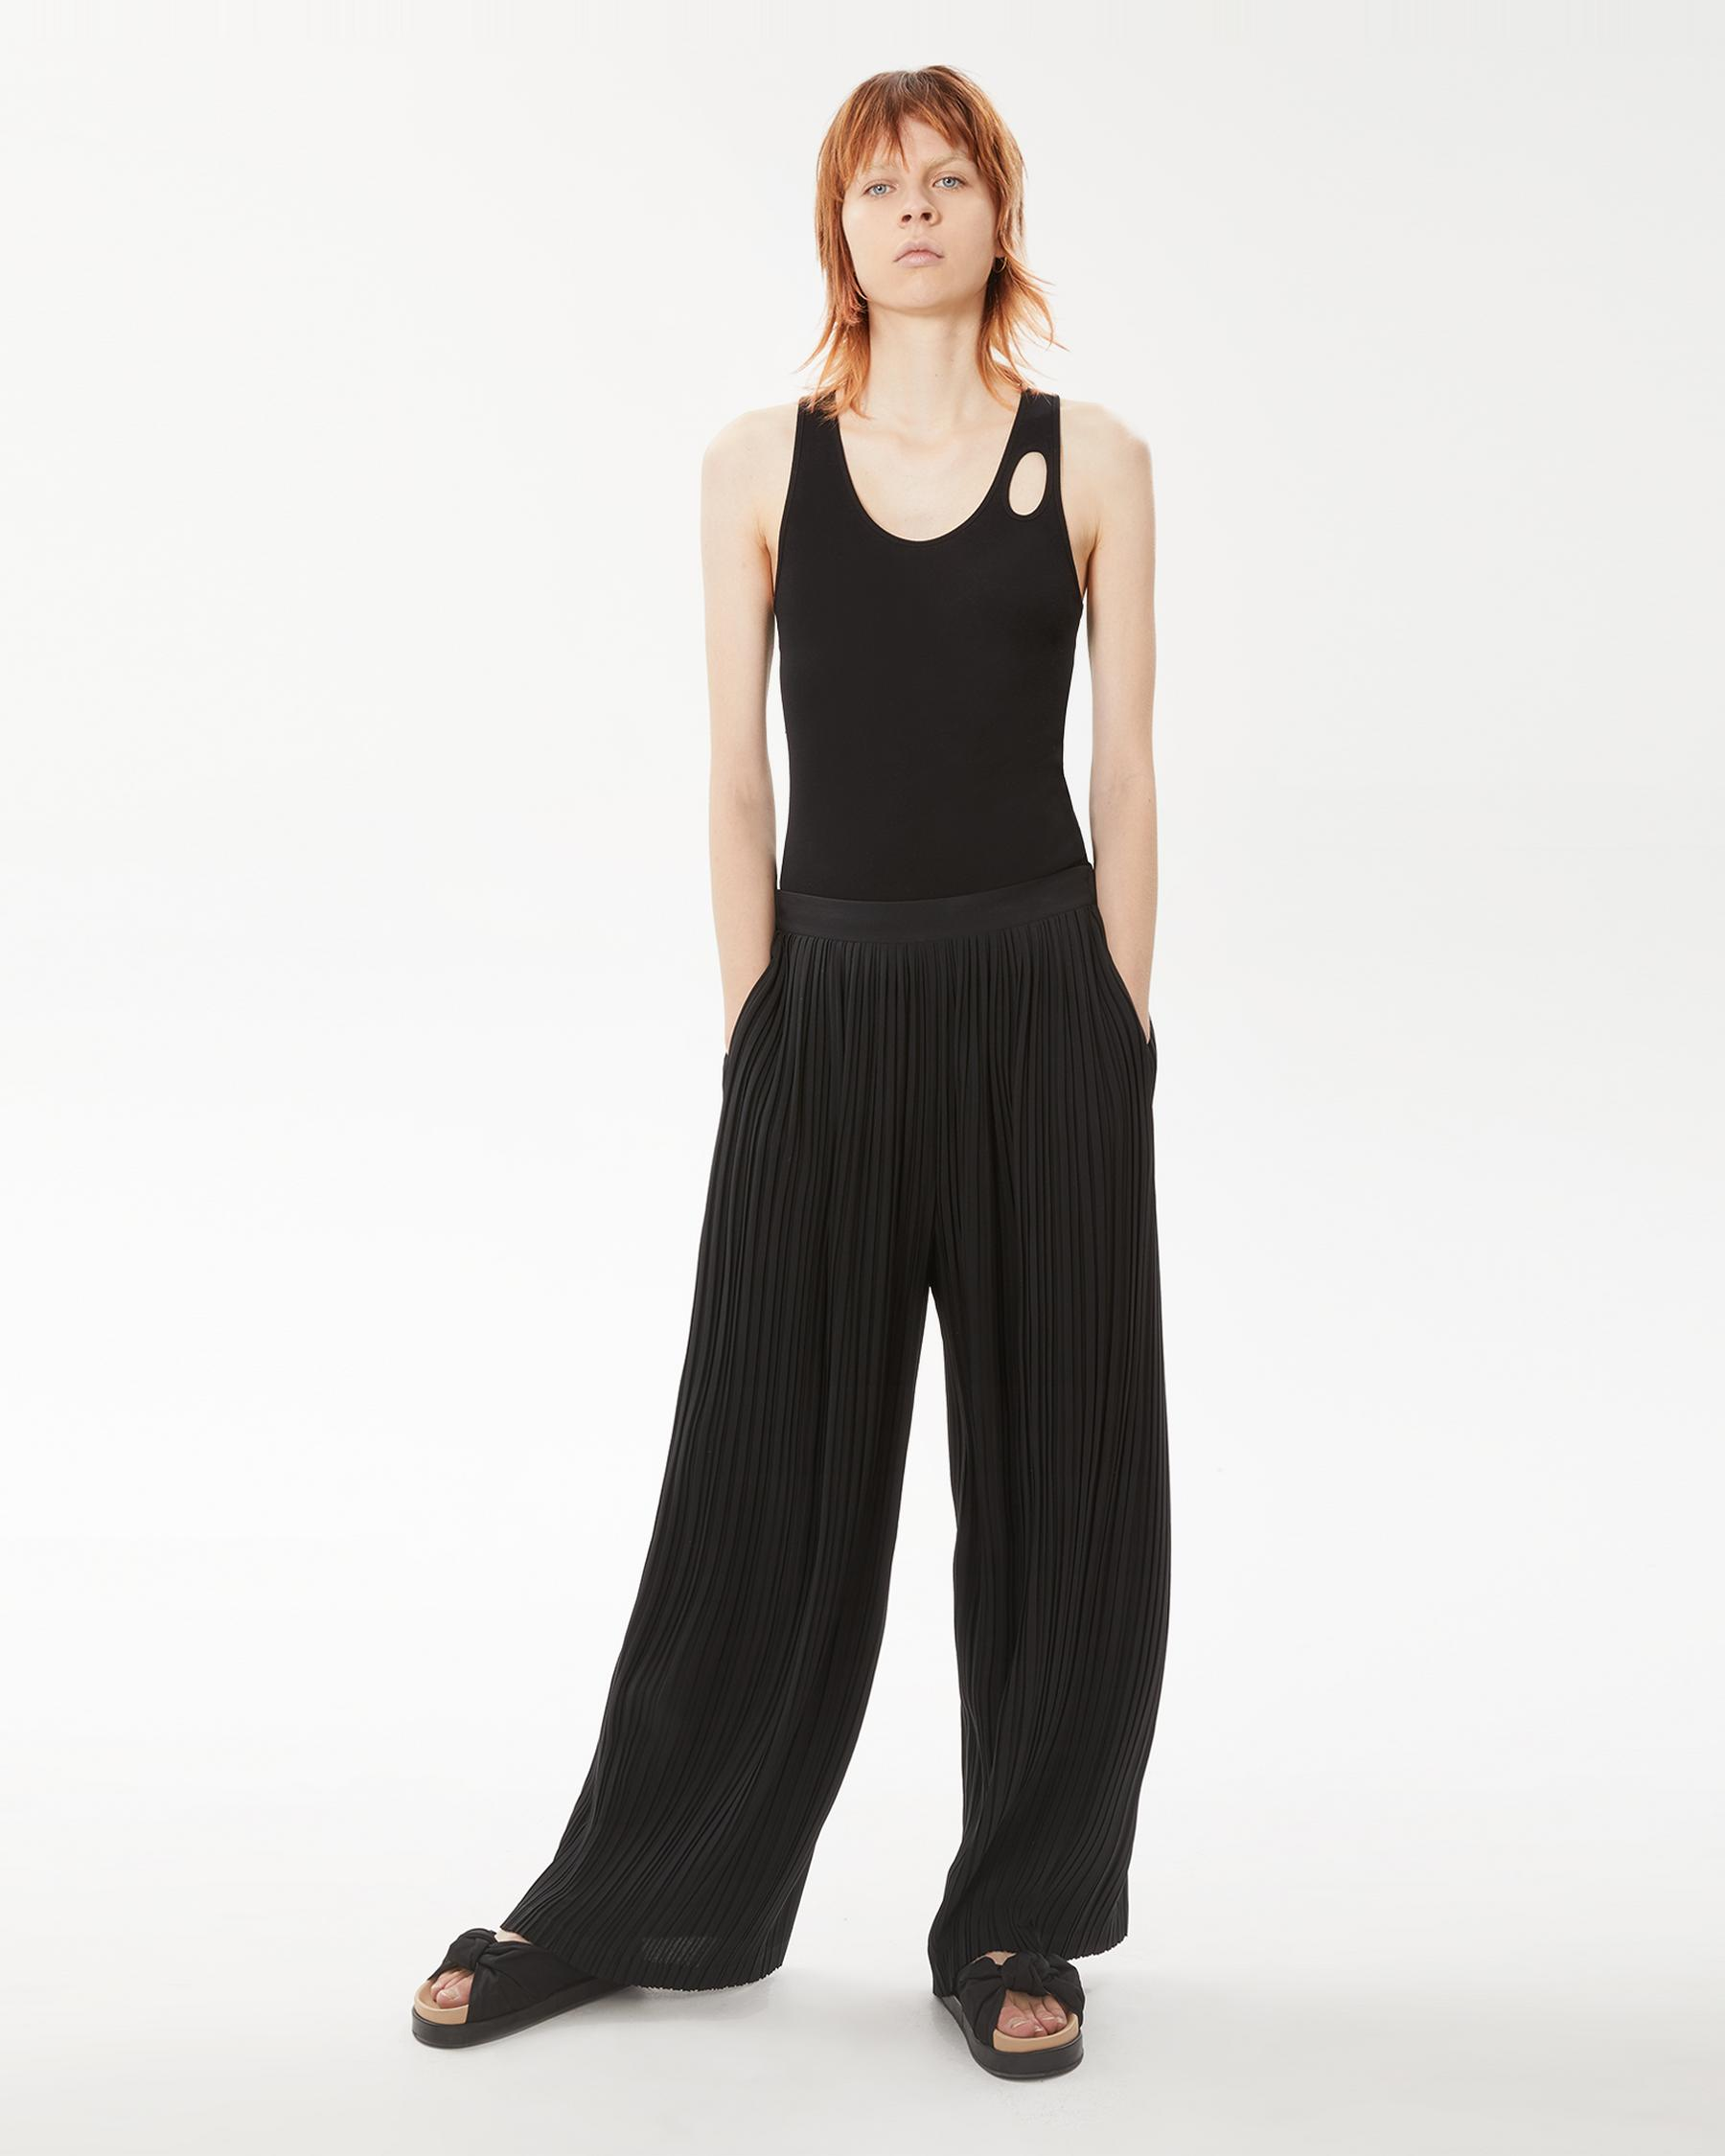 Helmut Lang 20 - Pleated Pant